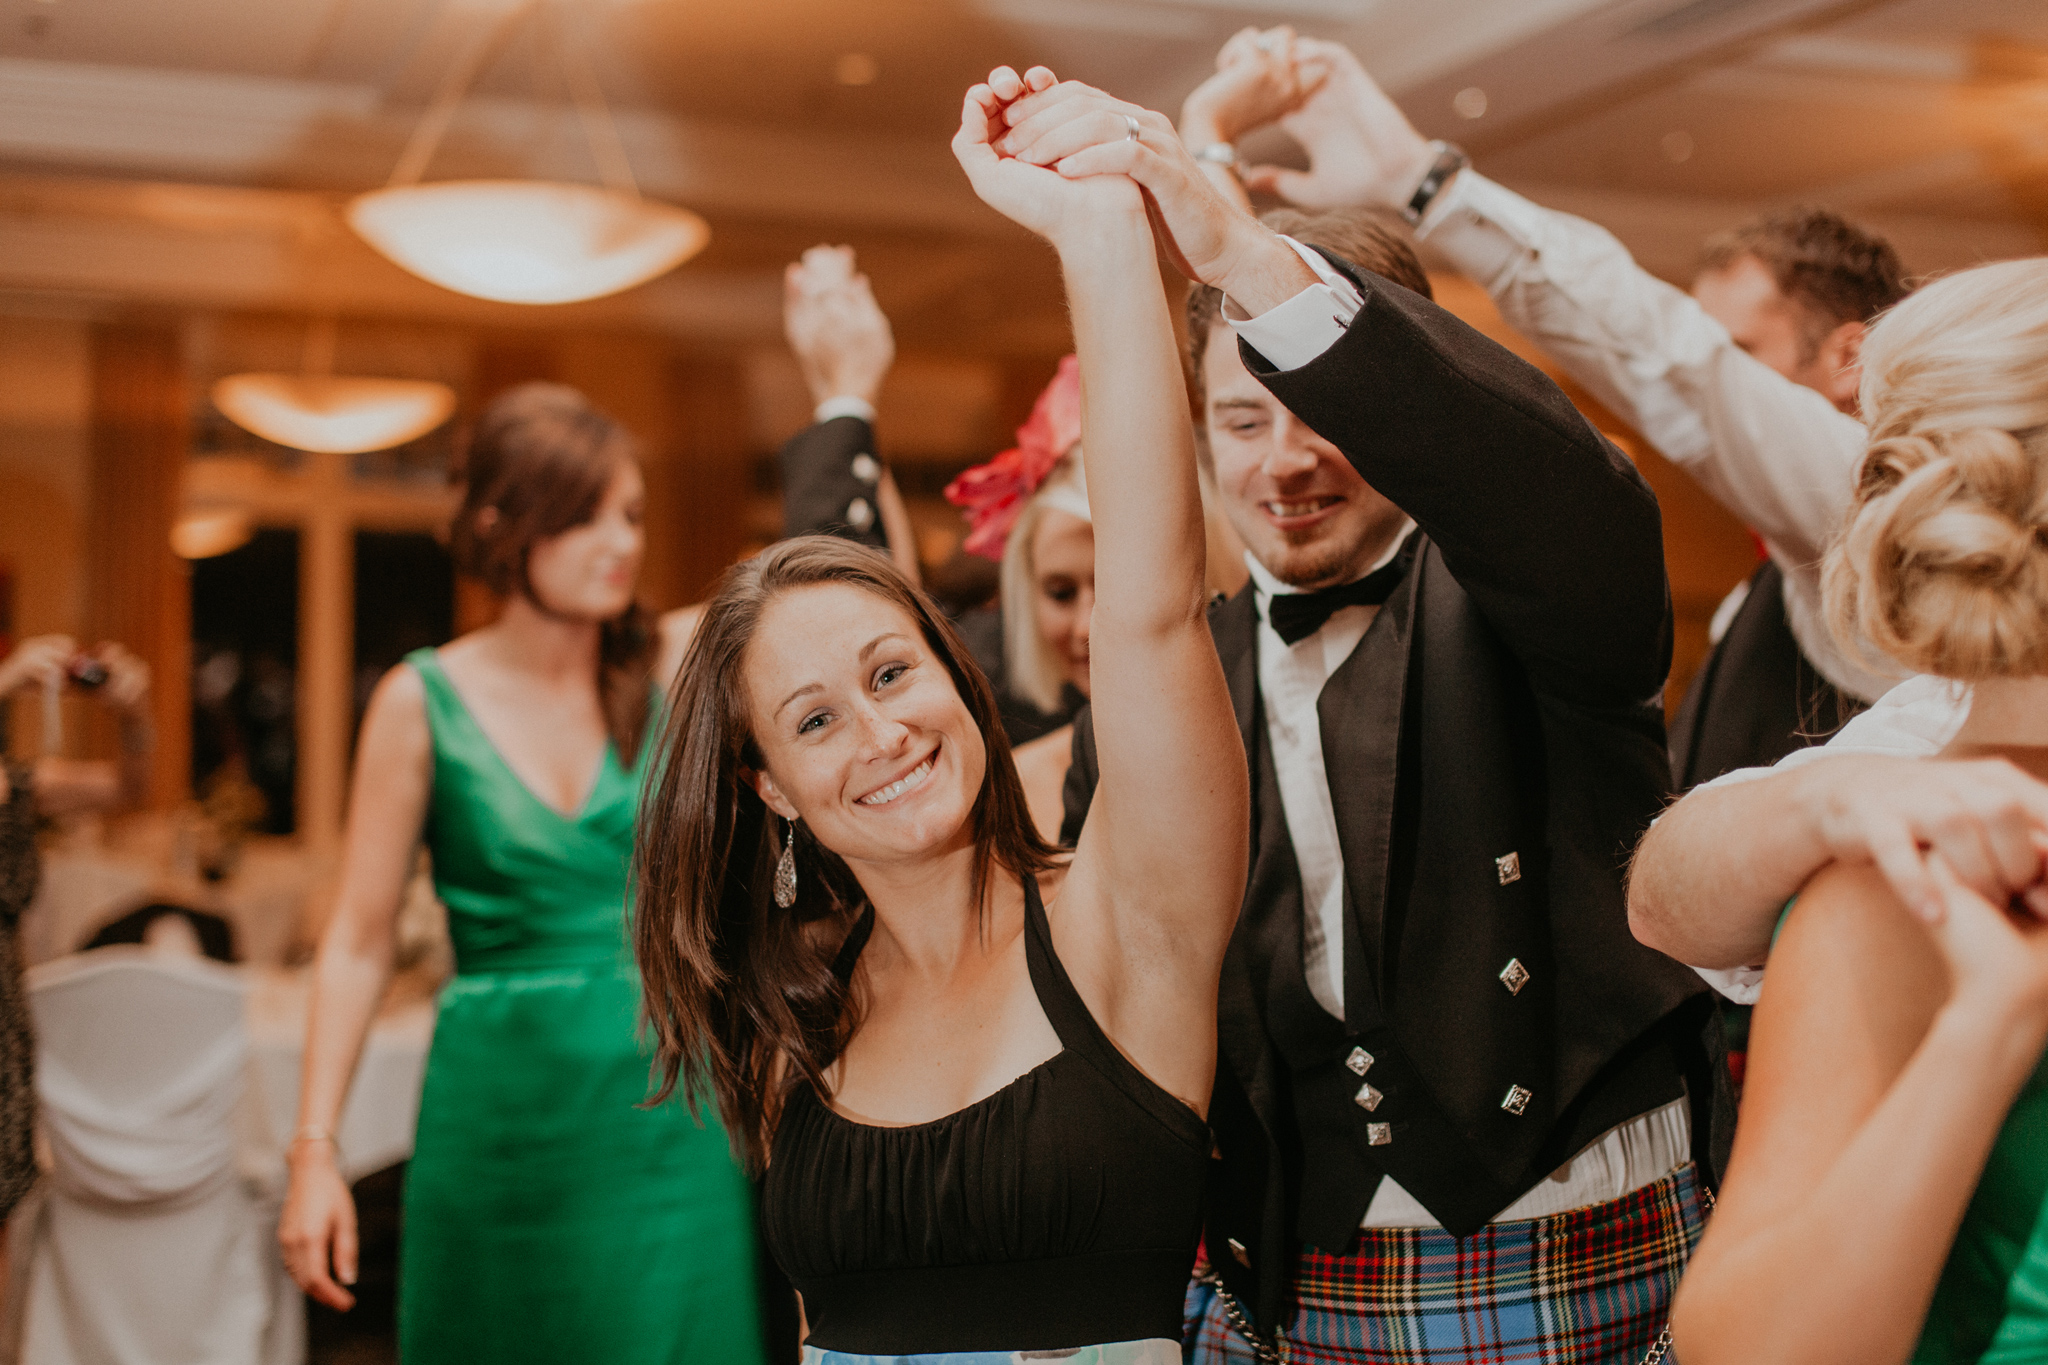 Guests smile and dance at wedding